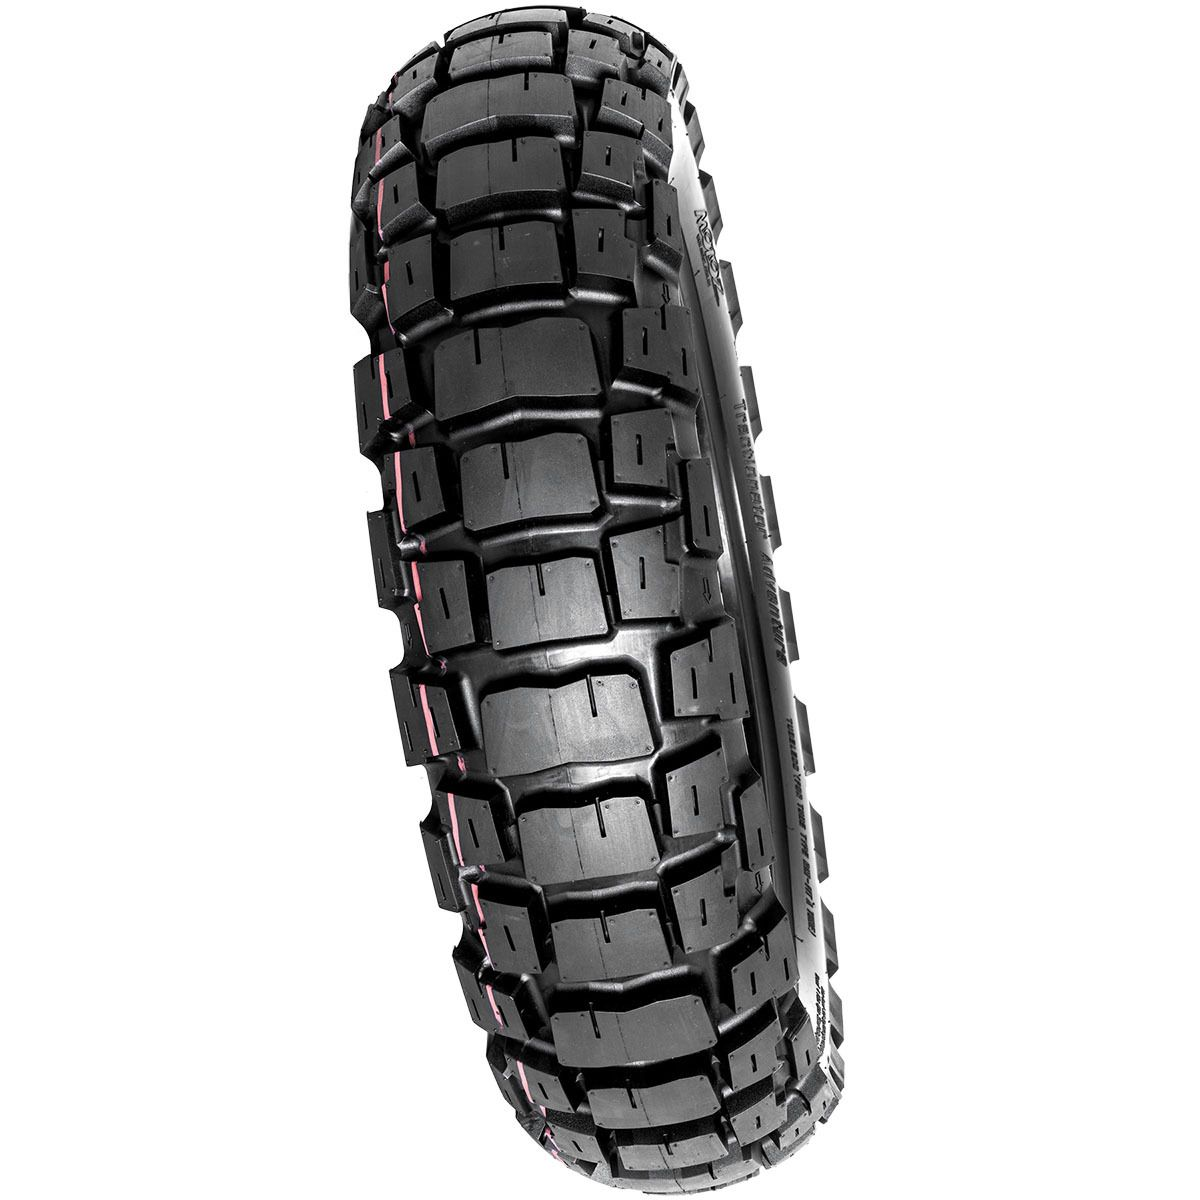 Motoz Tractionator 150 70 17 Tubeless Adventure Rear Tyre At Mxstore Dual Sport Motorcycle Tires For Sale Adventure Bike